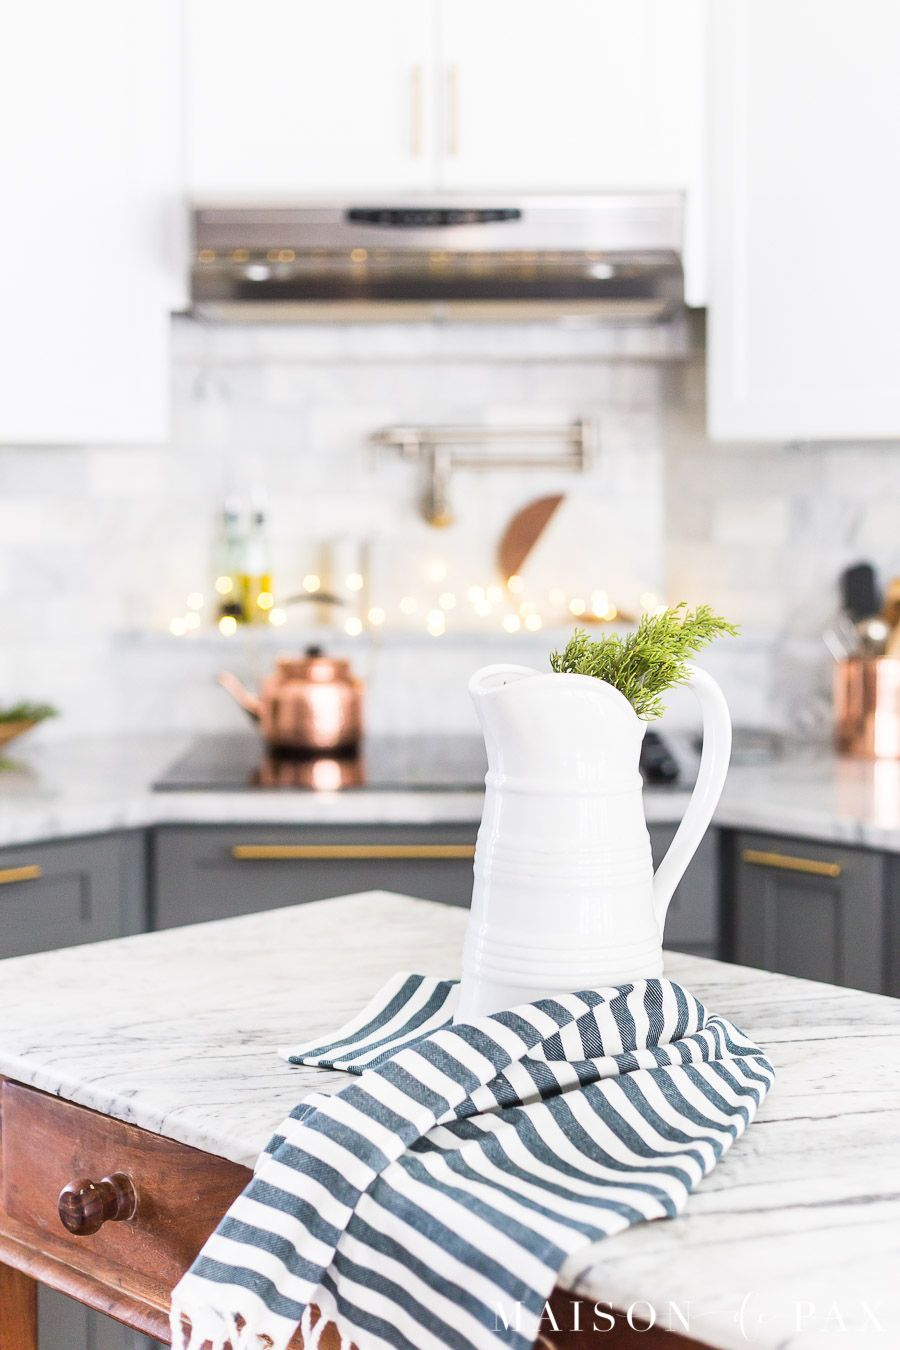 6 Easy Christmas Kitchen Ideas Holiday Decorating To Add Some Simple Natural Fresh Touches Your Christmasdecor Whitekitchen